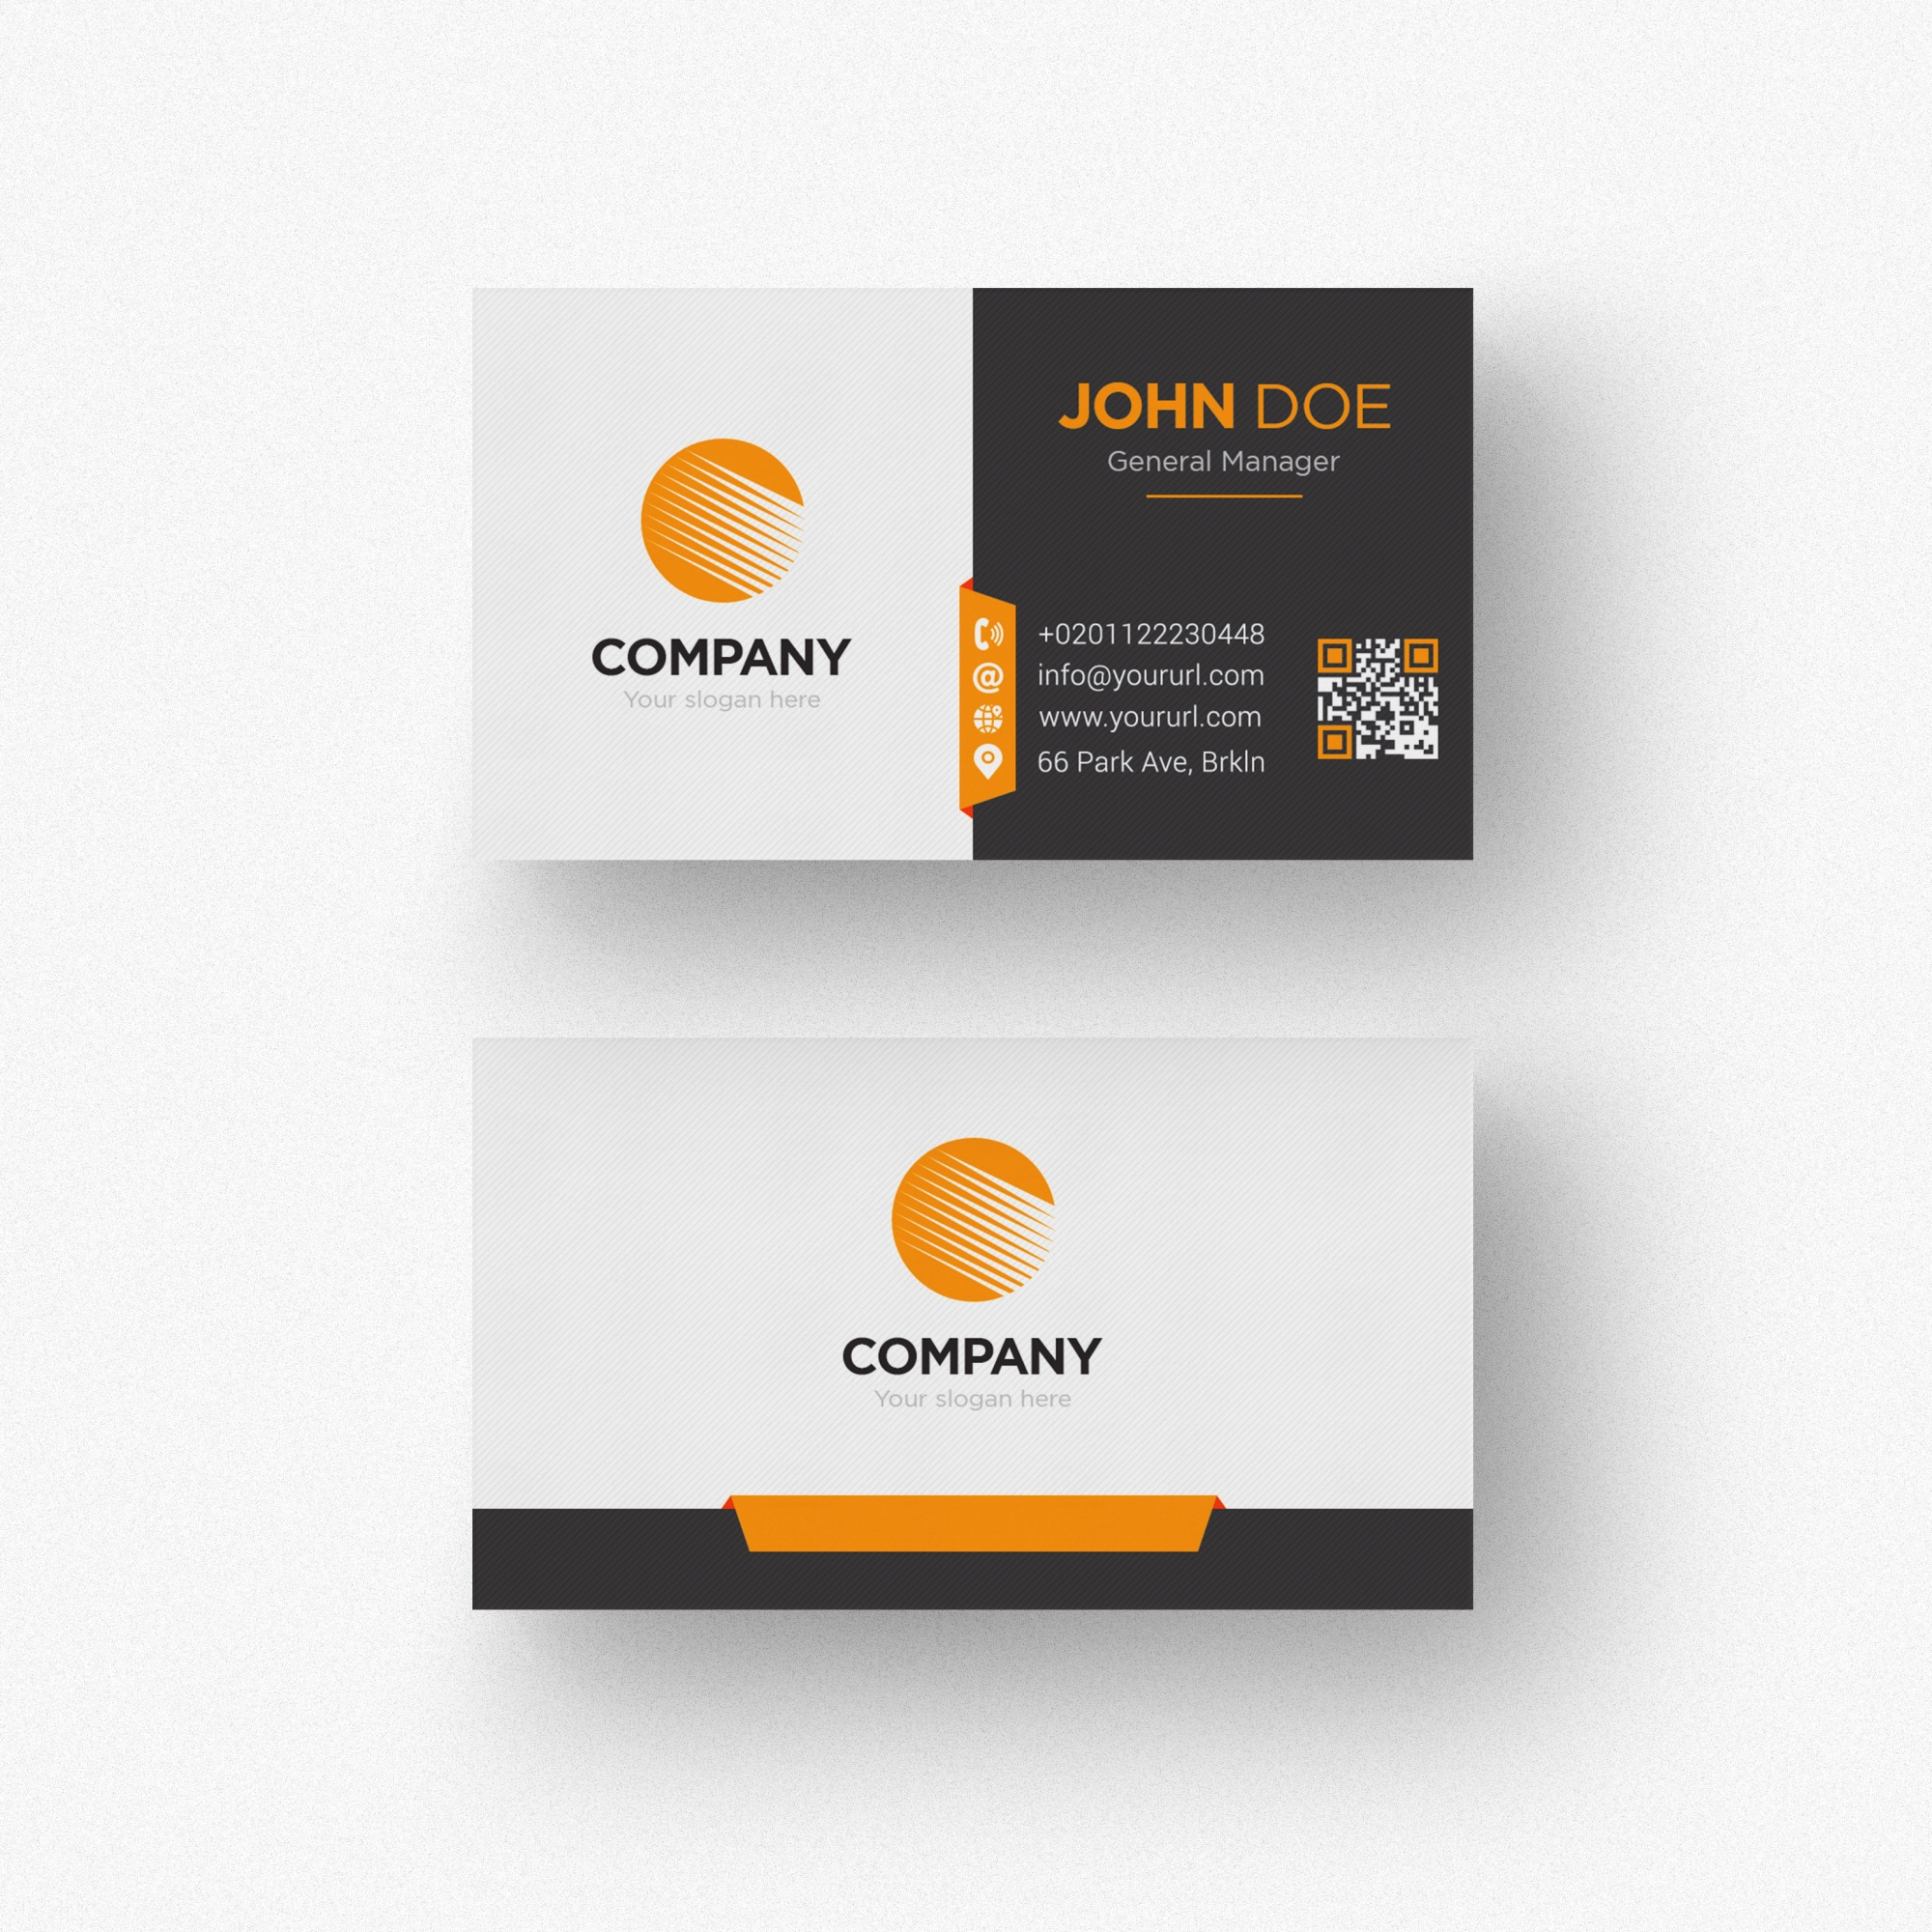 Black and white business card with orange details